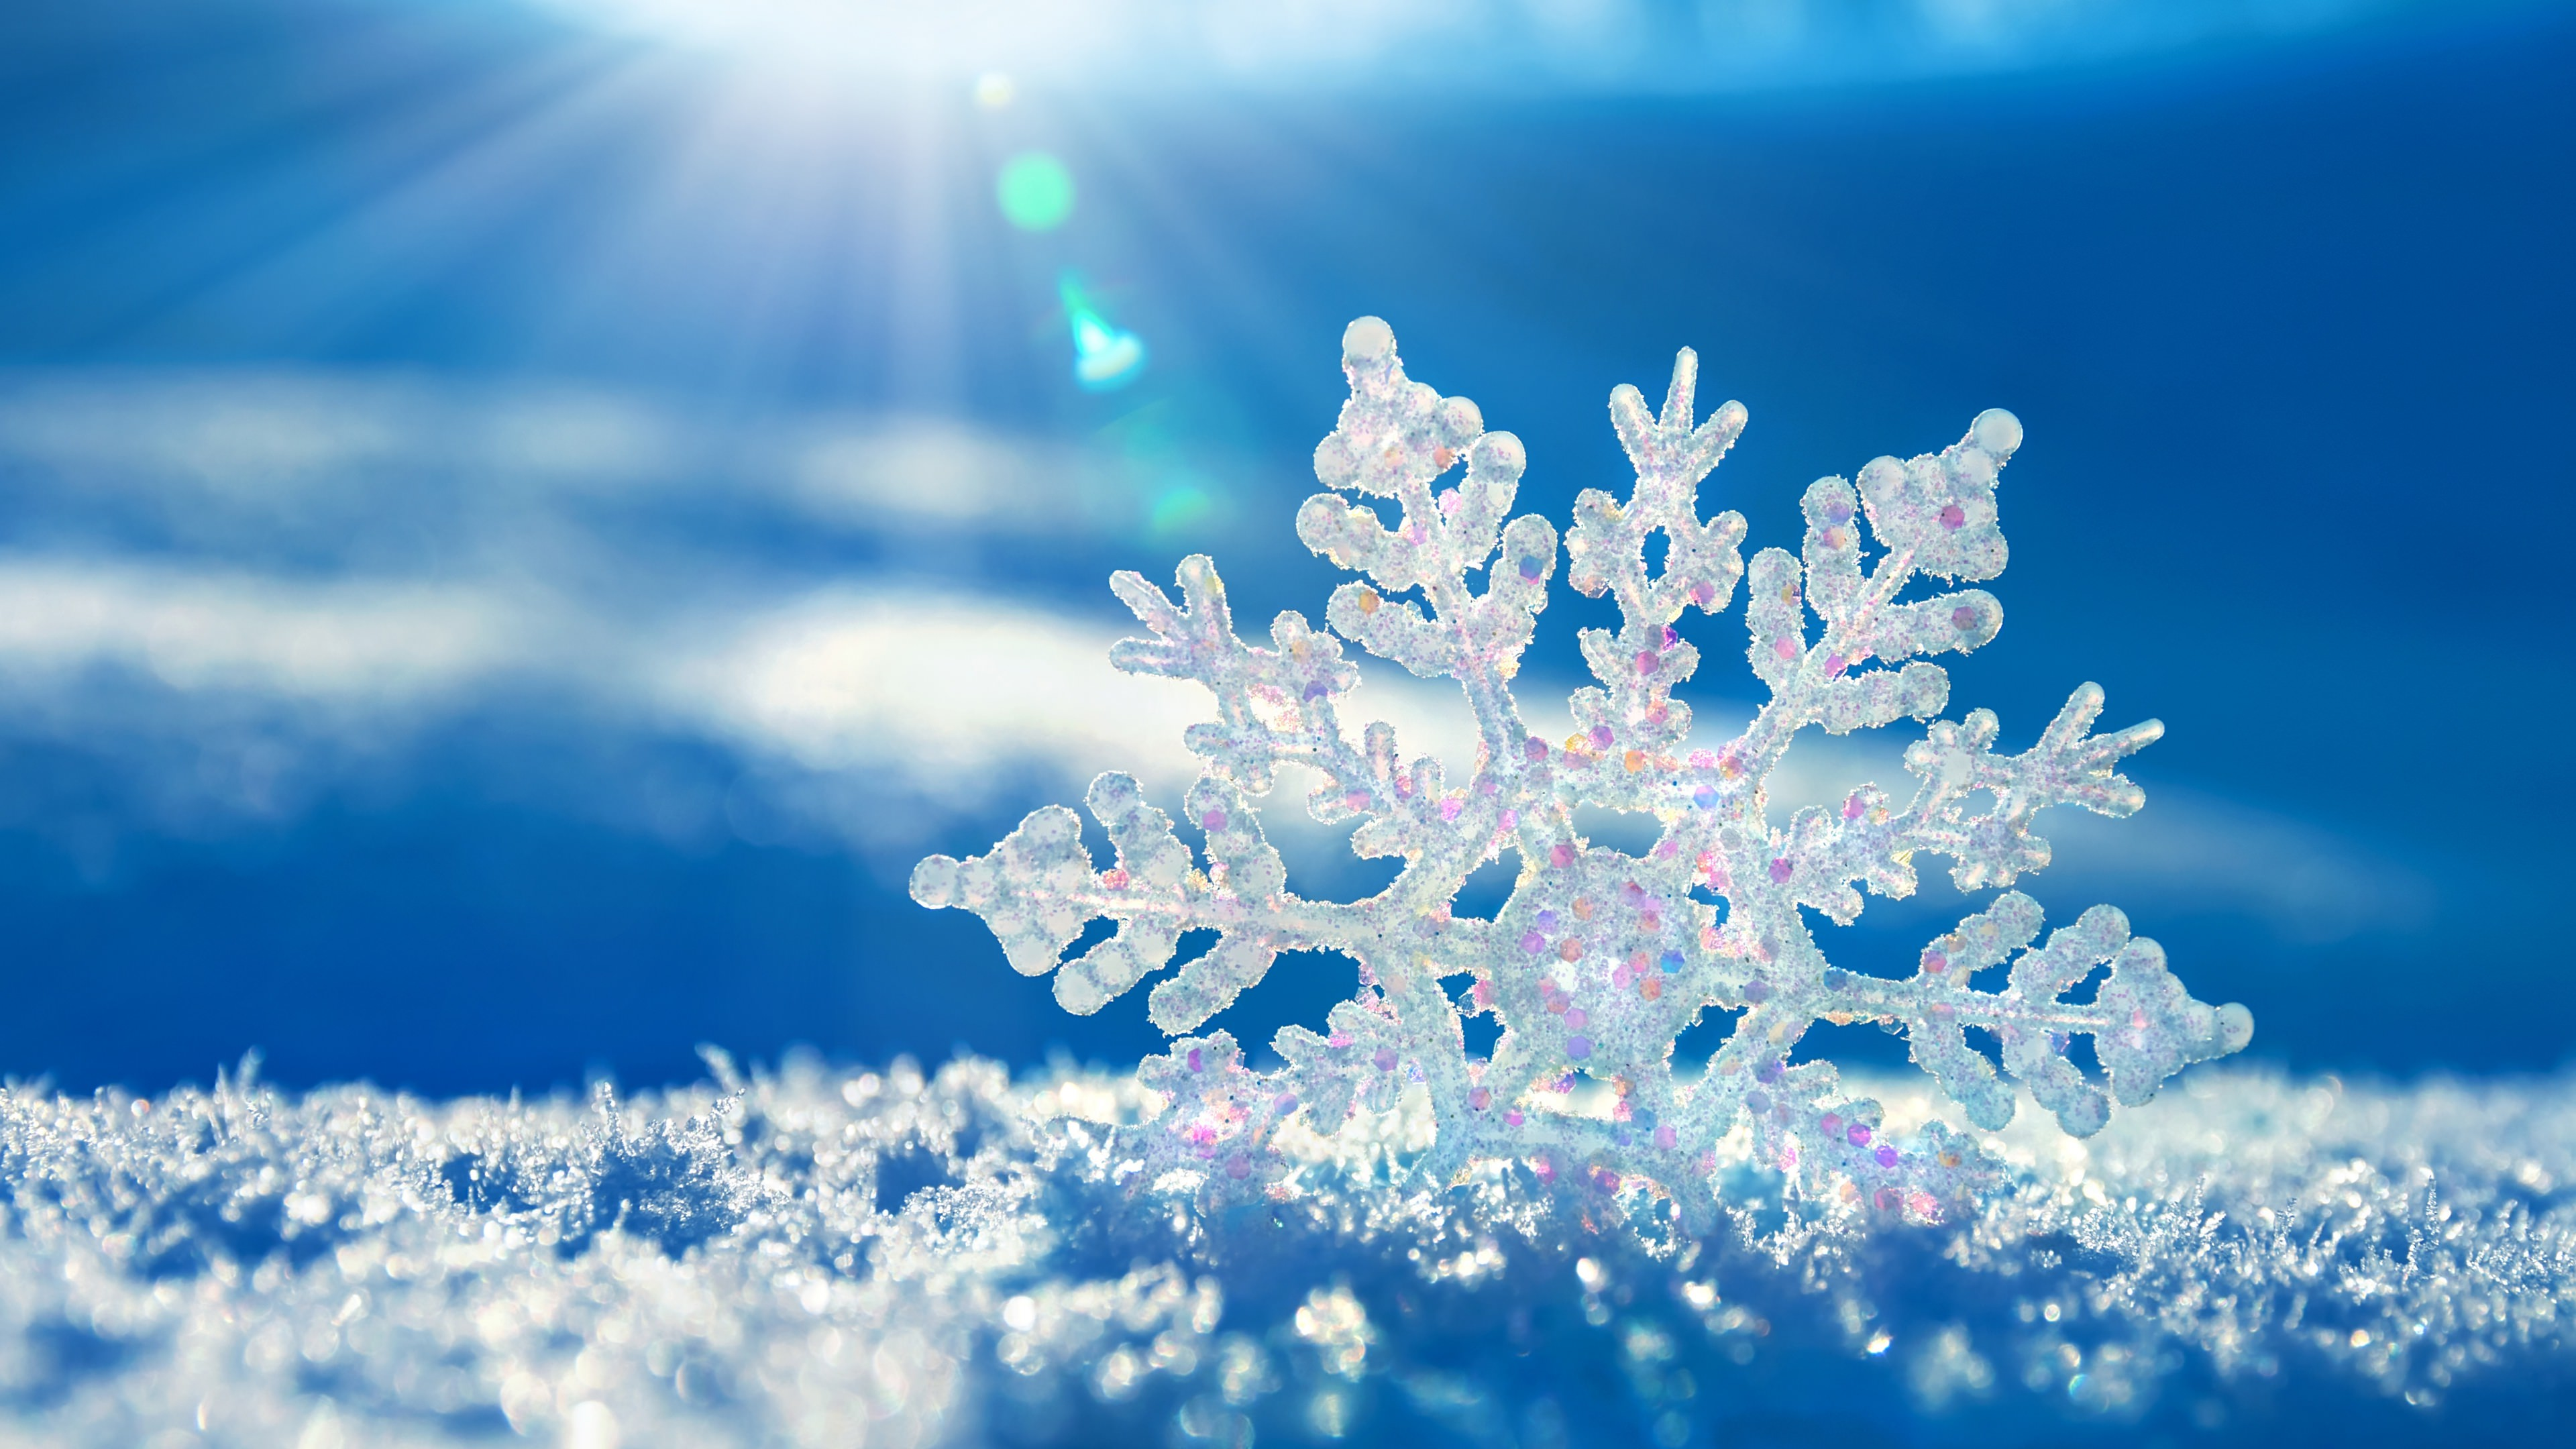 snowflake frozen background